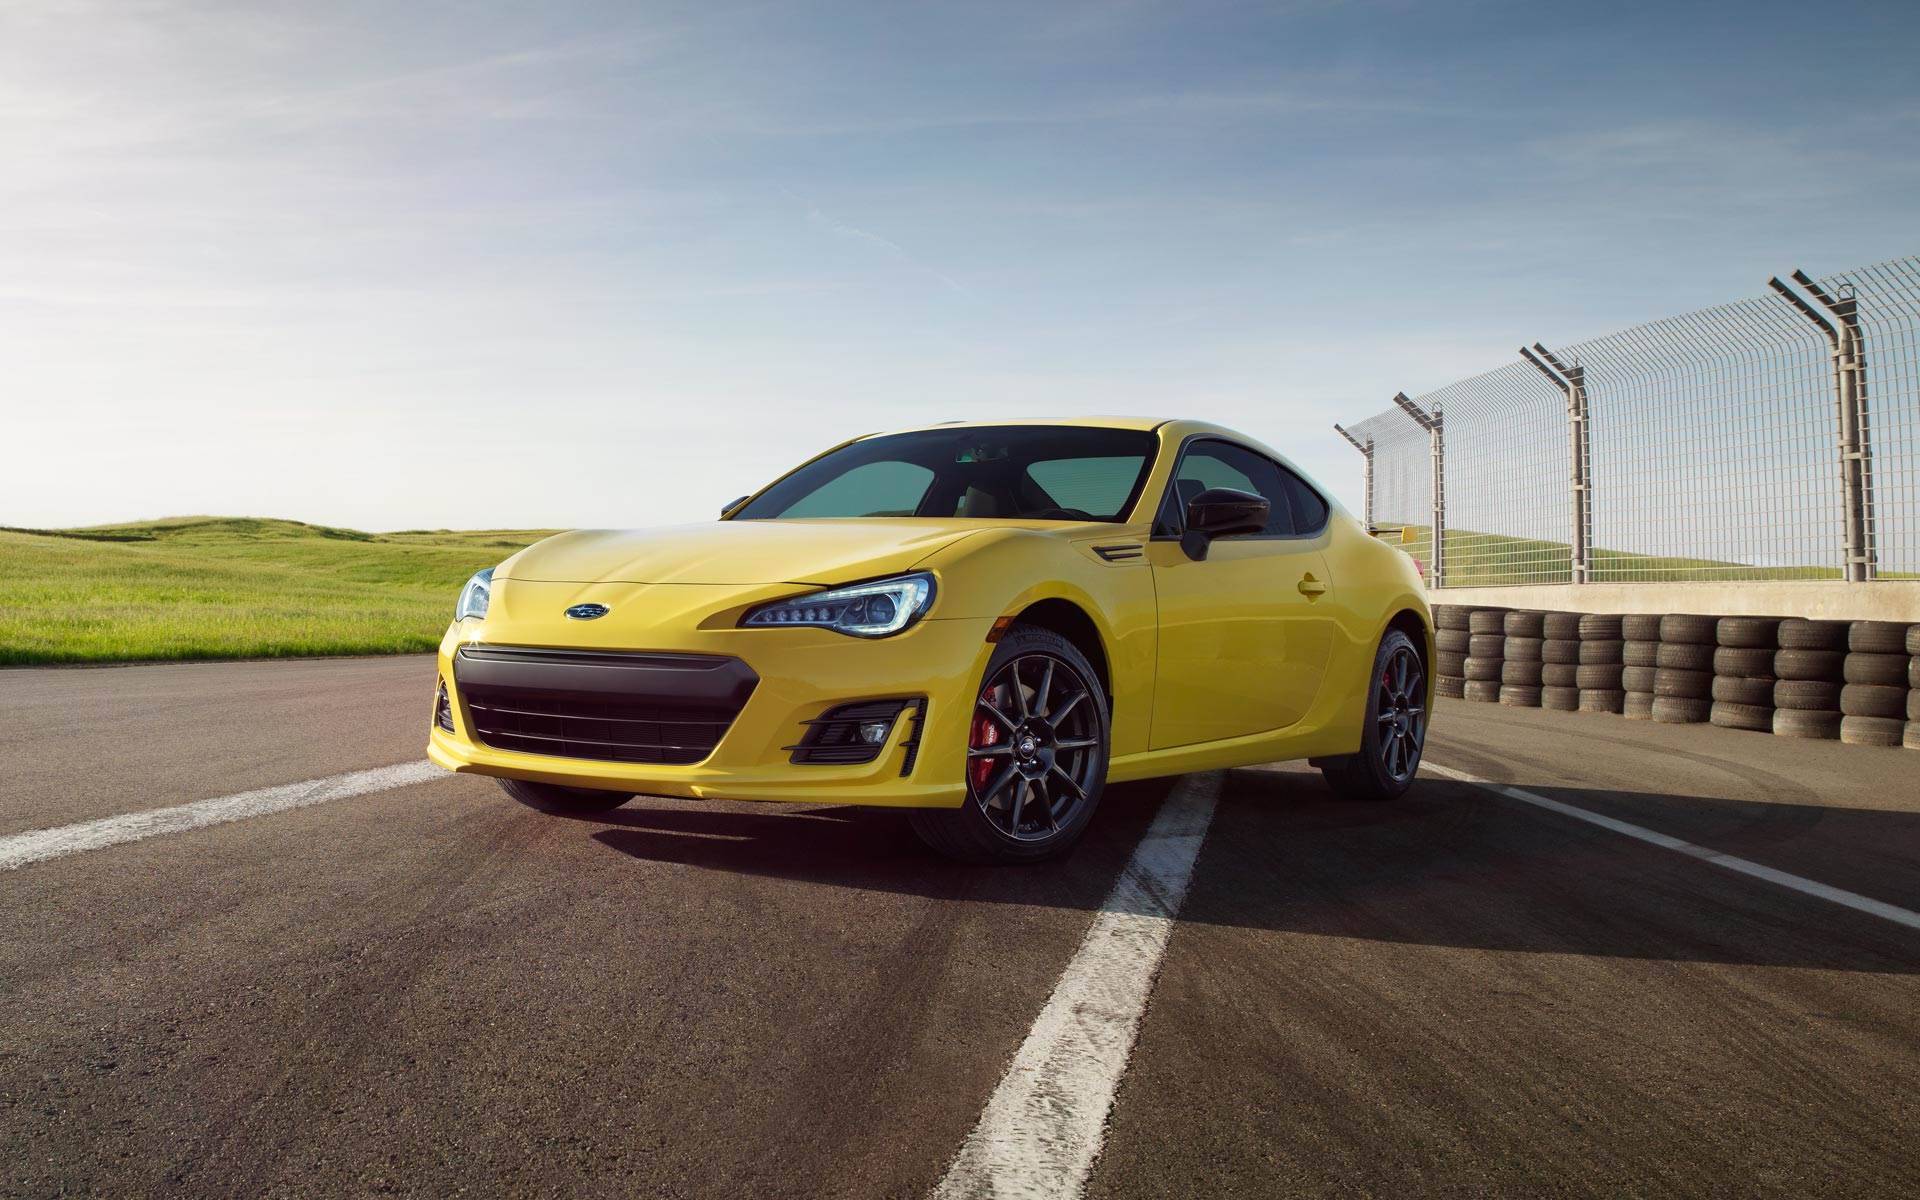 The 2017 series yellow what upgrades page 6 scion fr s forum subaru brz forum toyota 86 gt 86 forum as1 forum ft86club